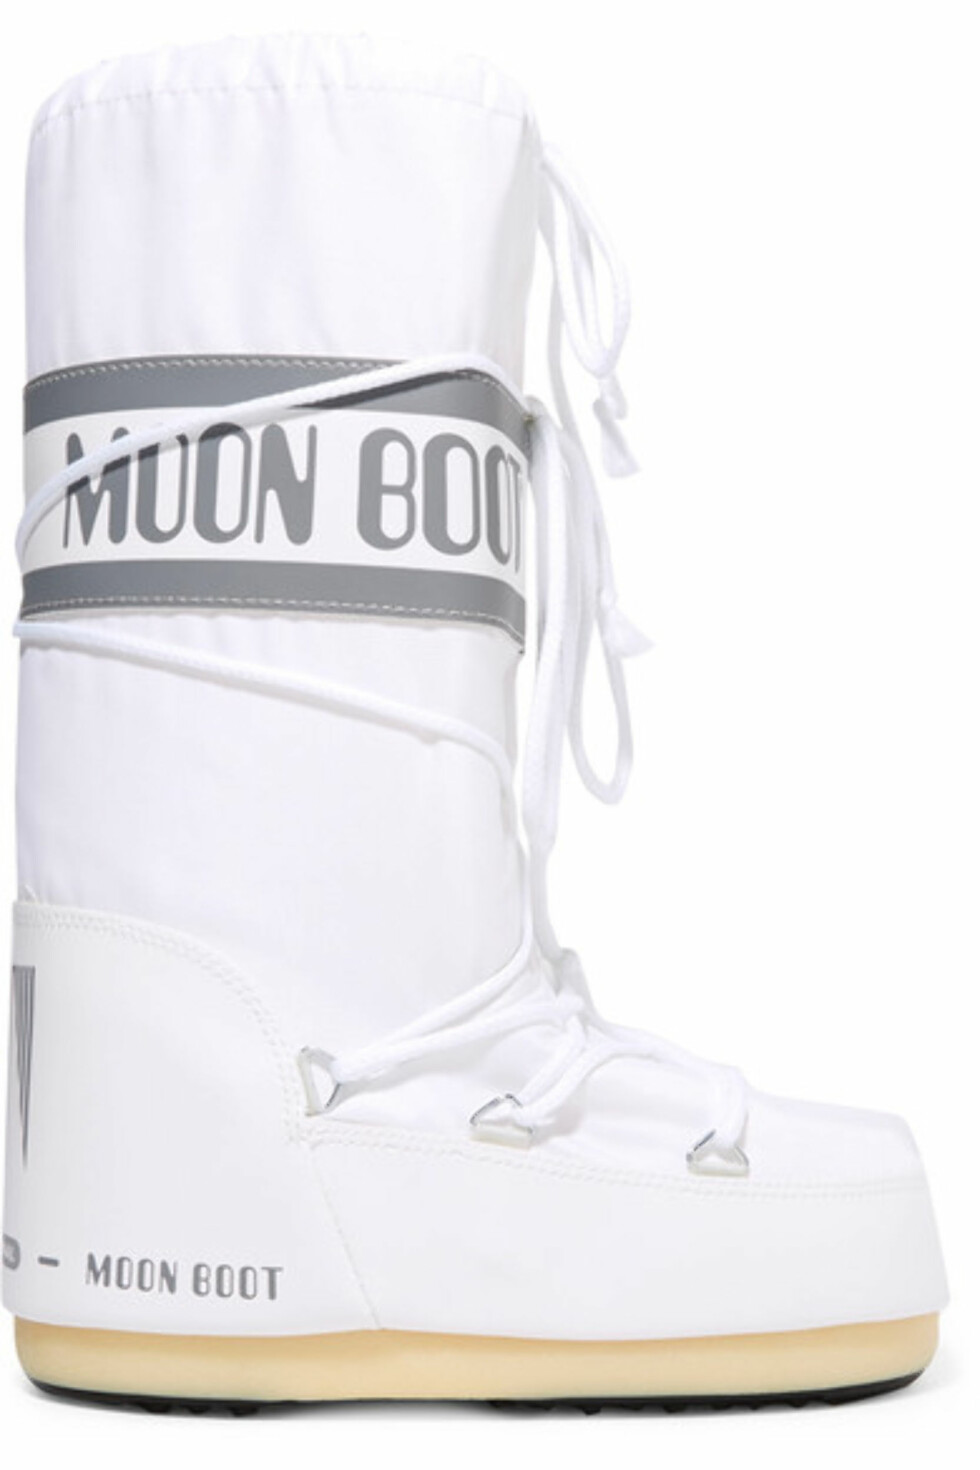 Sko fra Moon Boot via Net-a-porter.com |900,-| https://www.net-a-porter.com/no/en/product/719192/moon_boot/shell-and-faux-leather-snow-boots